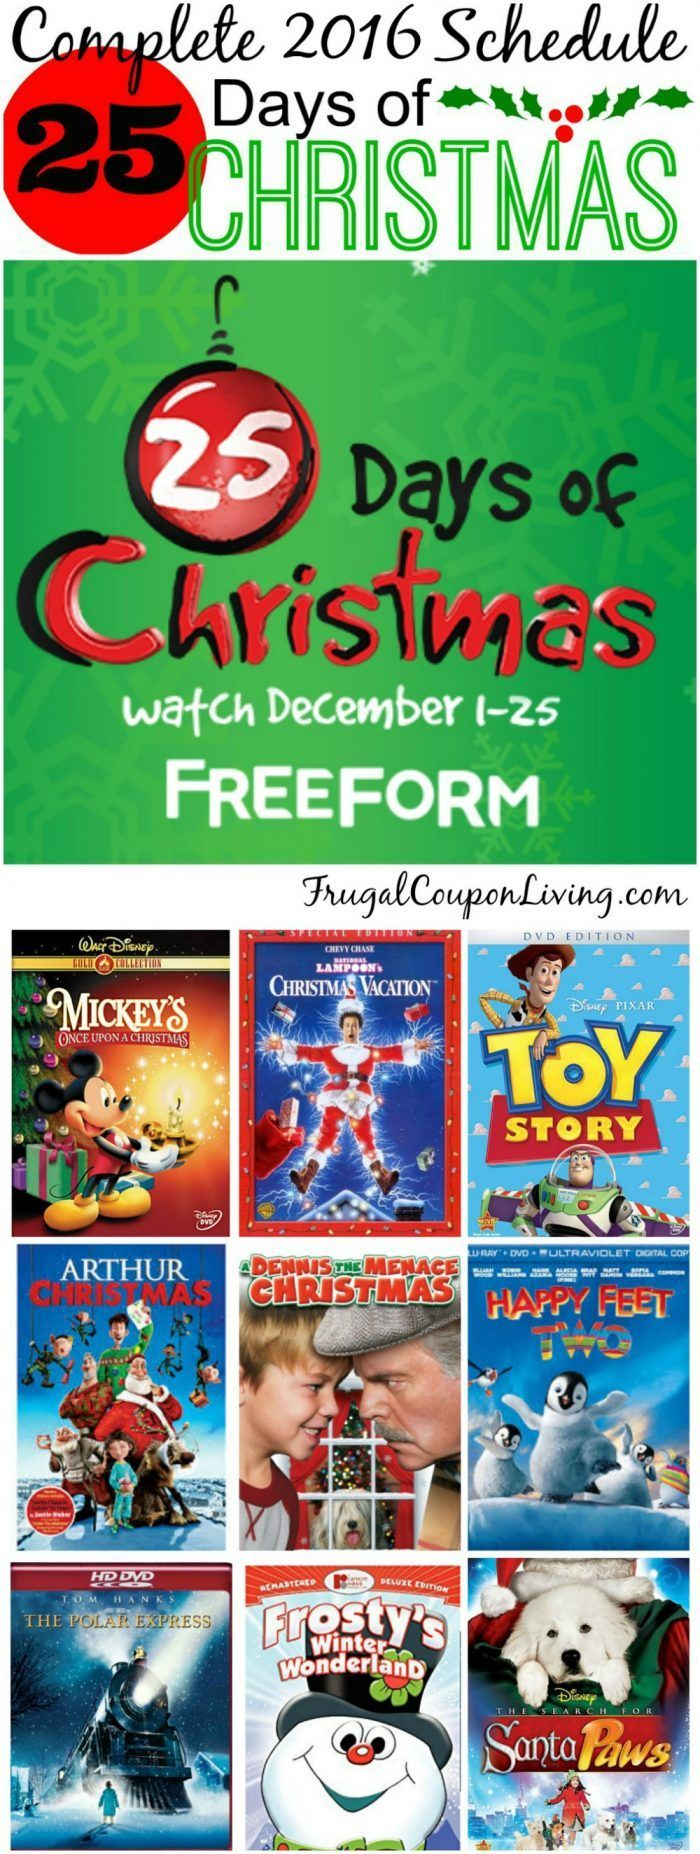 Freeform 25 Days of Christmas 2016 movie schedule on